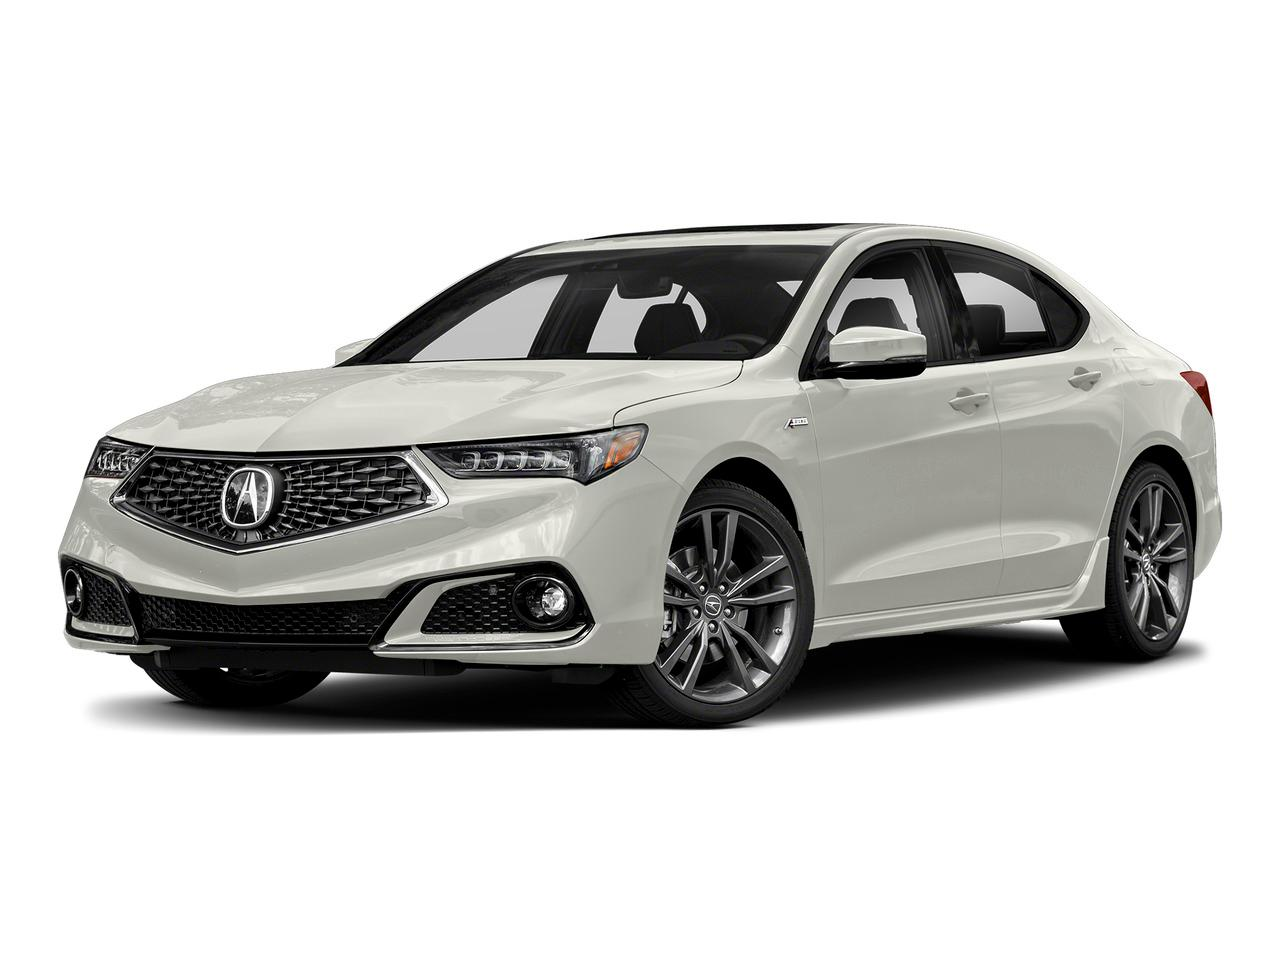 2018 Acura TLX Vehicle Photo in Portland, OR 97225